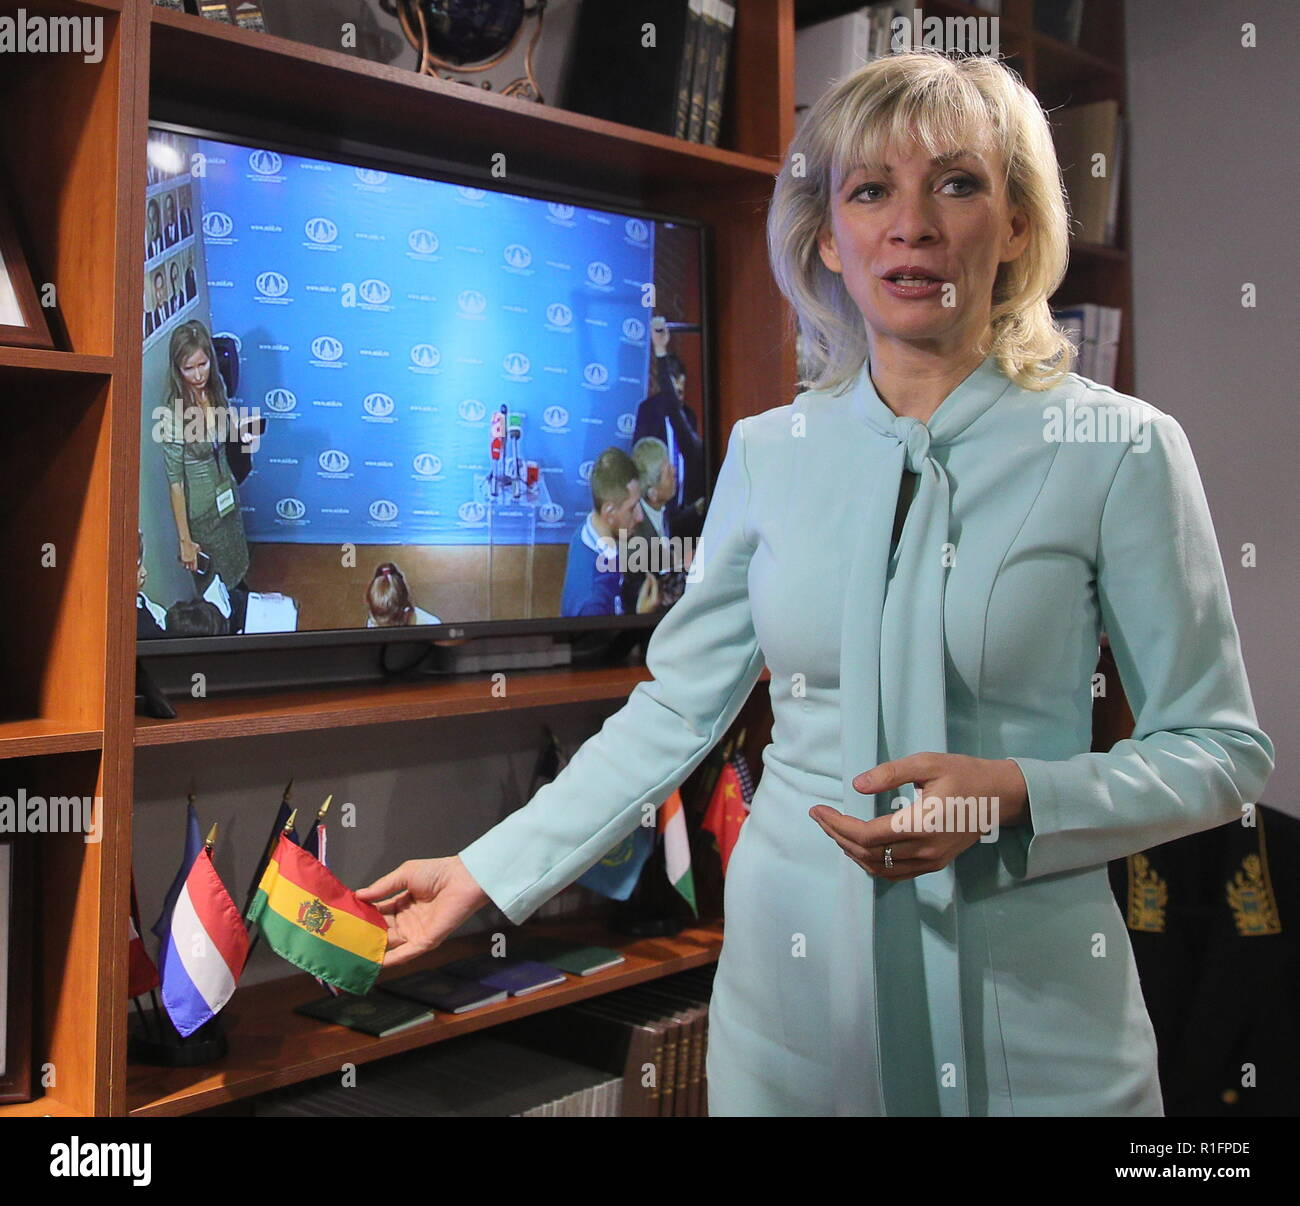 Moscow, Russia. 12th Nov, 2018. MOSCOW, RUSSIA - NOVEMBER 12, 2018: Russian Foreign Ministry Spokesperson Maria Zakharova during the opening of a representative office of the Russian Foreign Ministry at the Masterslavl Children's Amusement Center. Children will study diplomatic etiquette, learn to solve global problems and to answer journalists' tricky questions and will take part in negotiations in the form of a game at the representative office. Sergei Bobylev/TASS Credit: ITAR-TASS News Agency/Alamy Live News - Stock Image